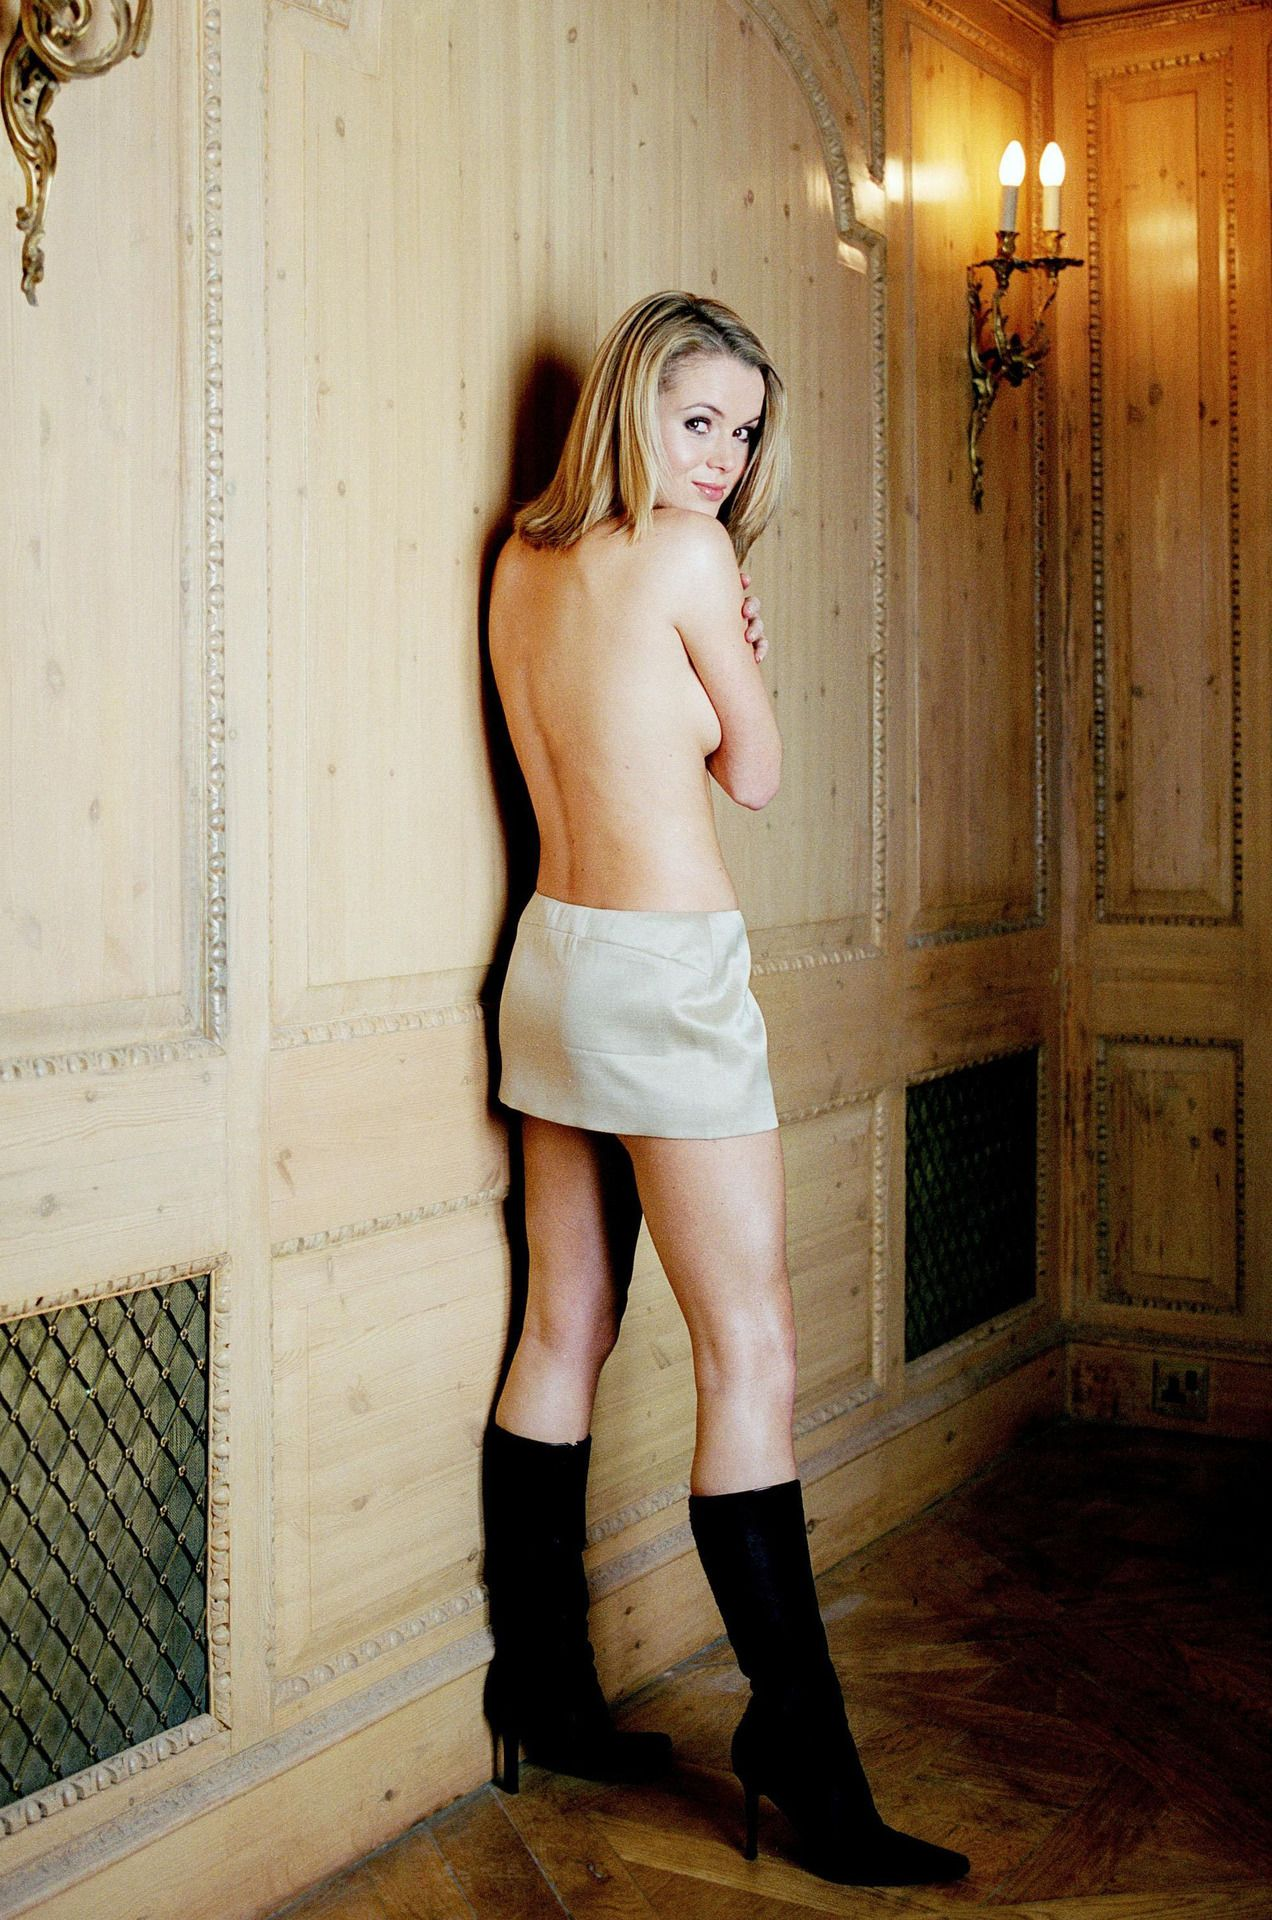 Amanda holden pornse pictures, full length movies on cliphunter